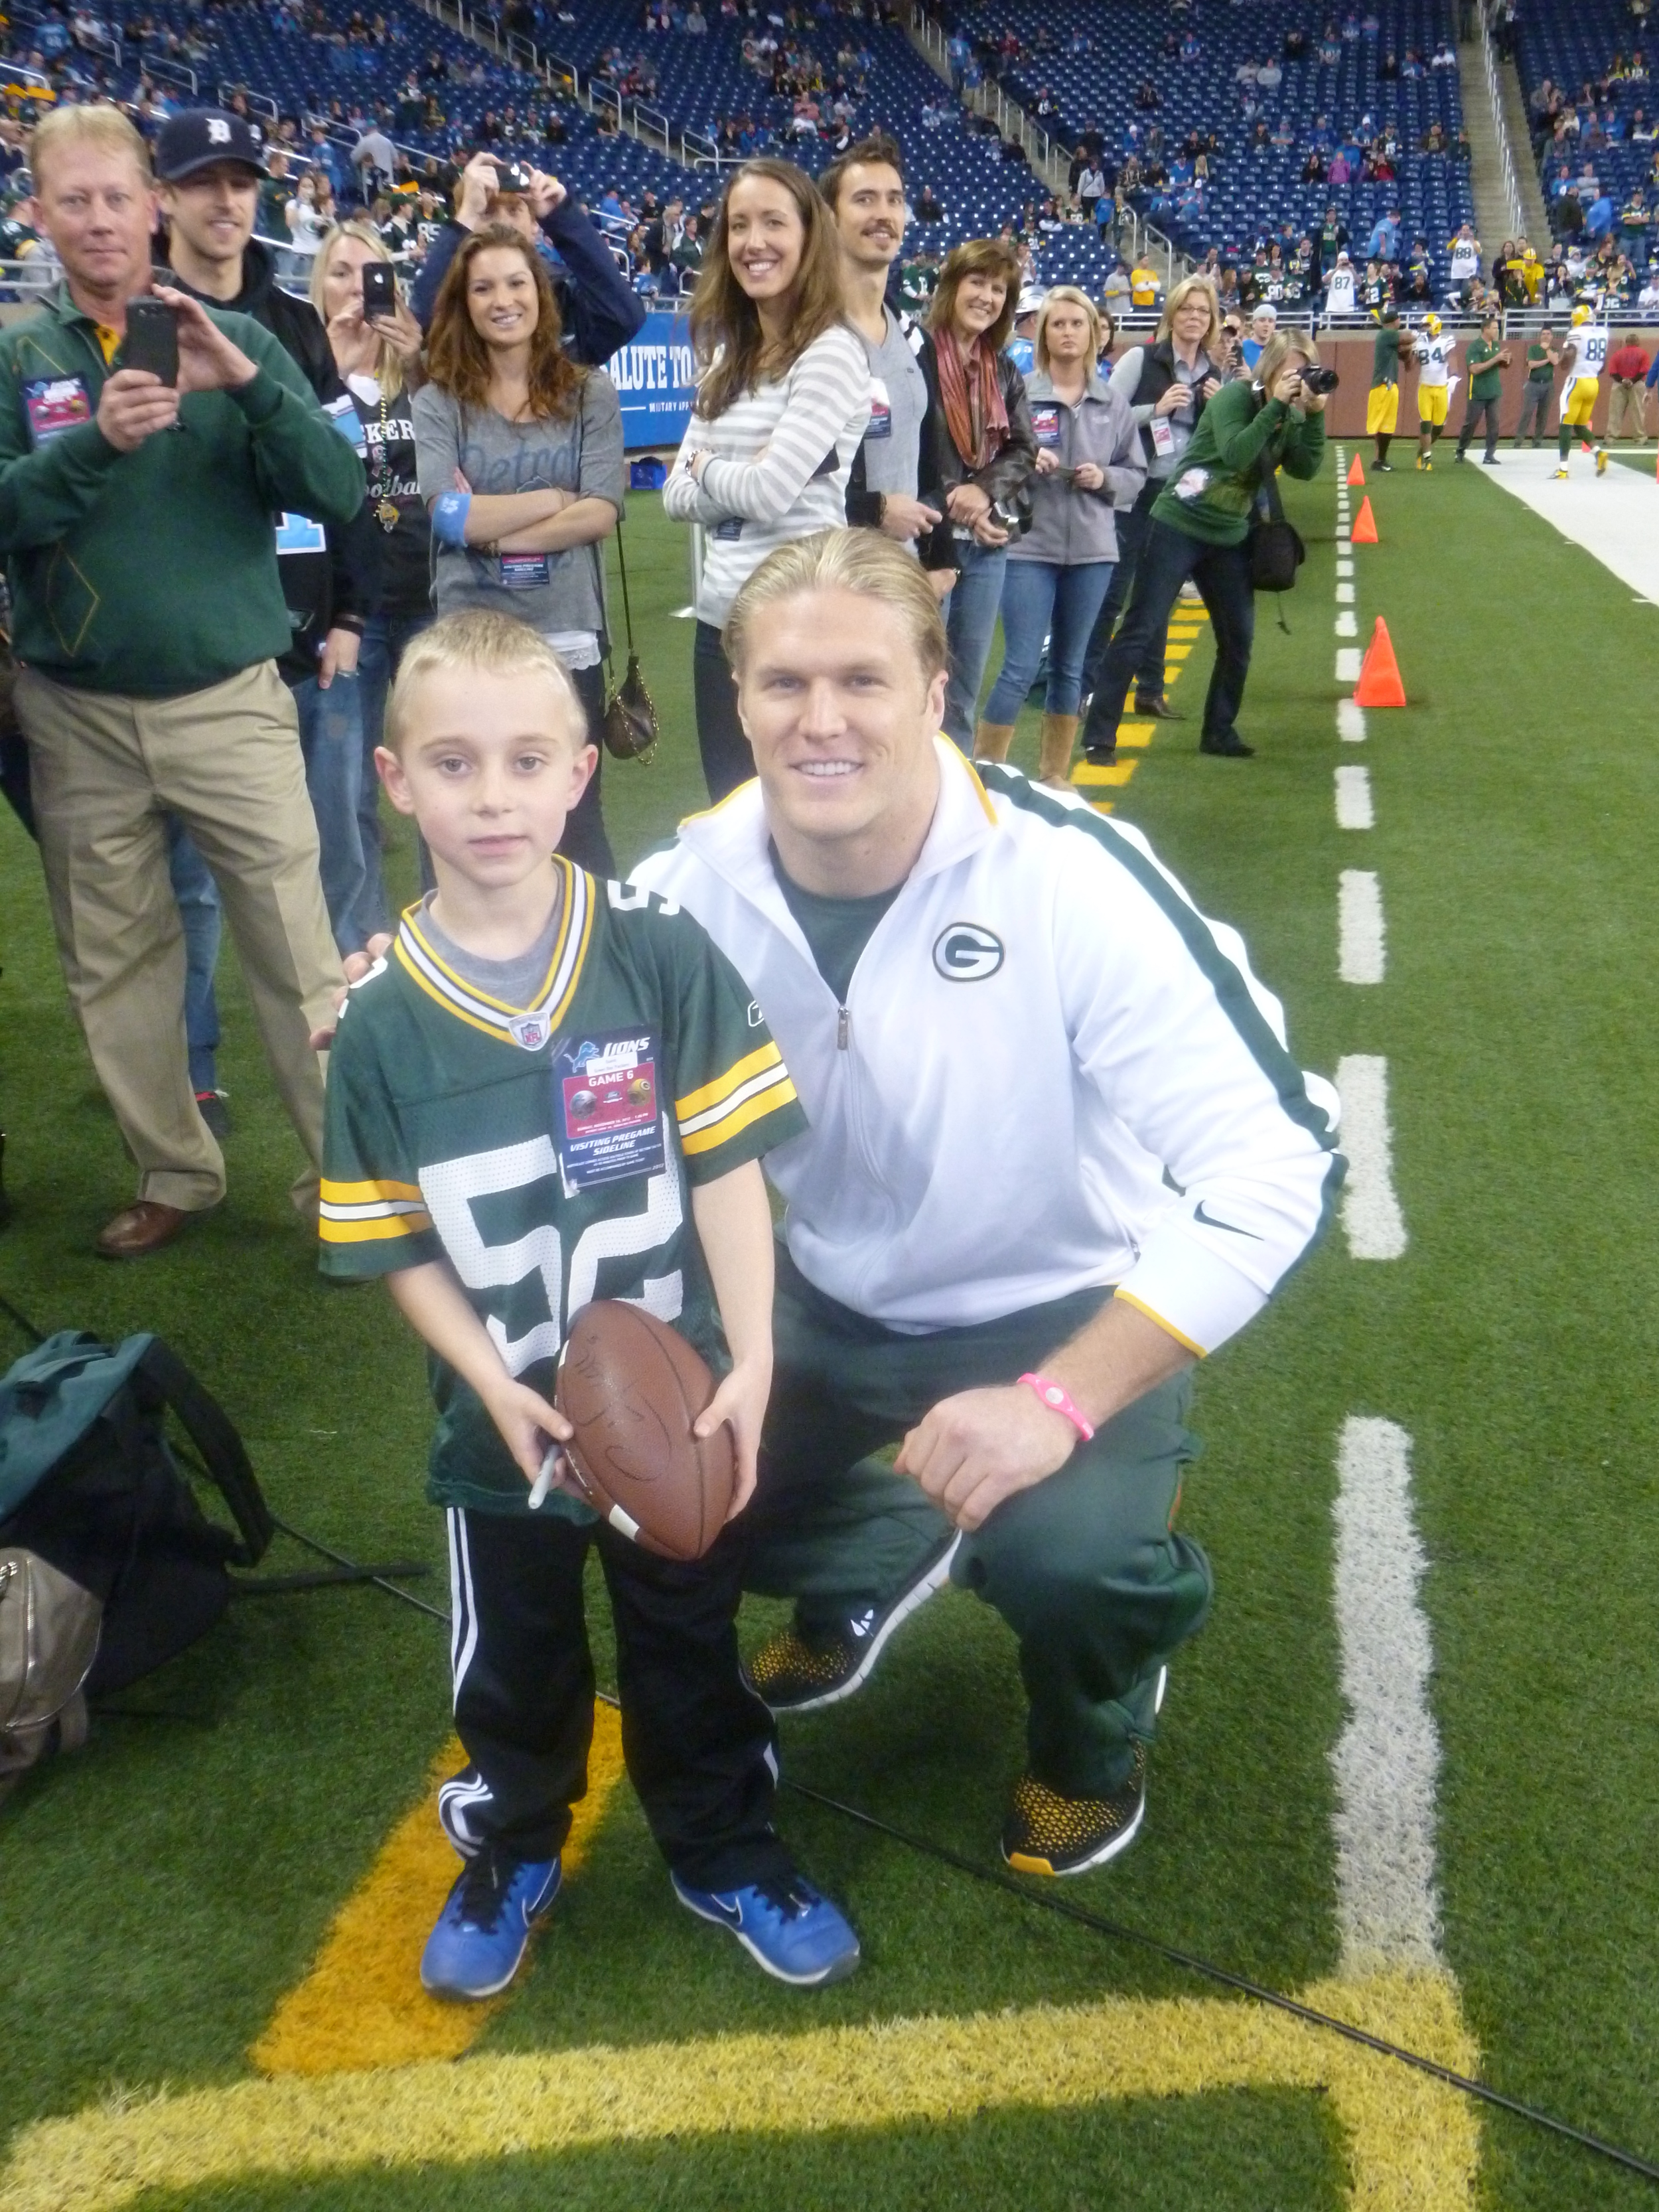 Meeting Clay Matthews was a special treat in 2012. We had tickets but were given side line passes to watch the guys practice and the hopes to meet Clay. Clay is a huge supporter of Cure Duchenne and an incredible person.